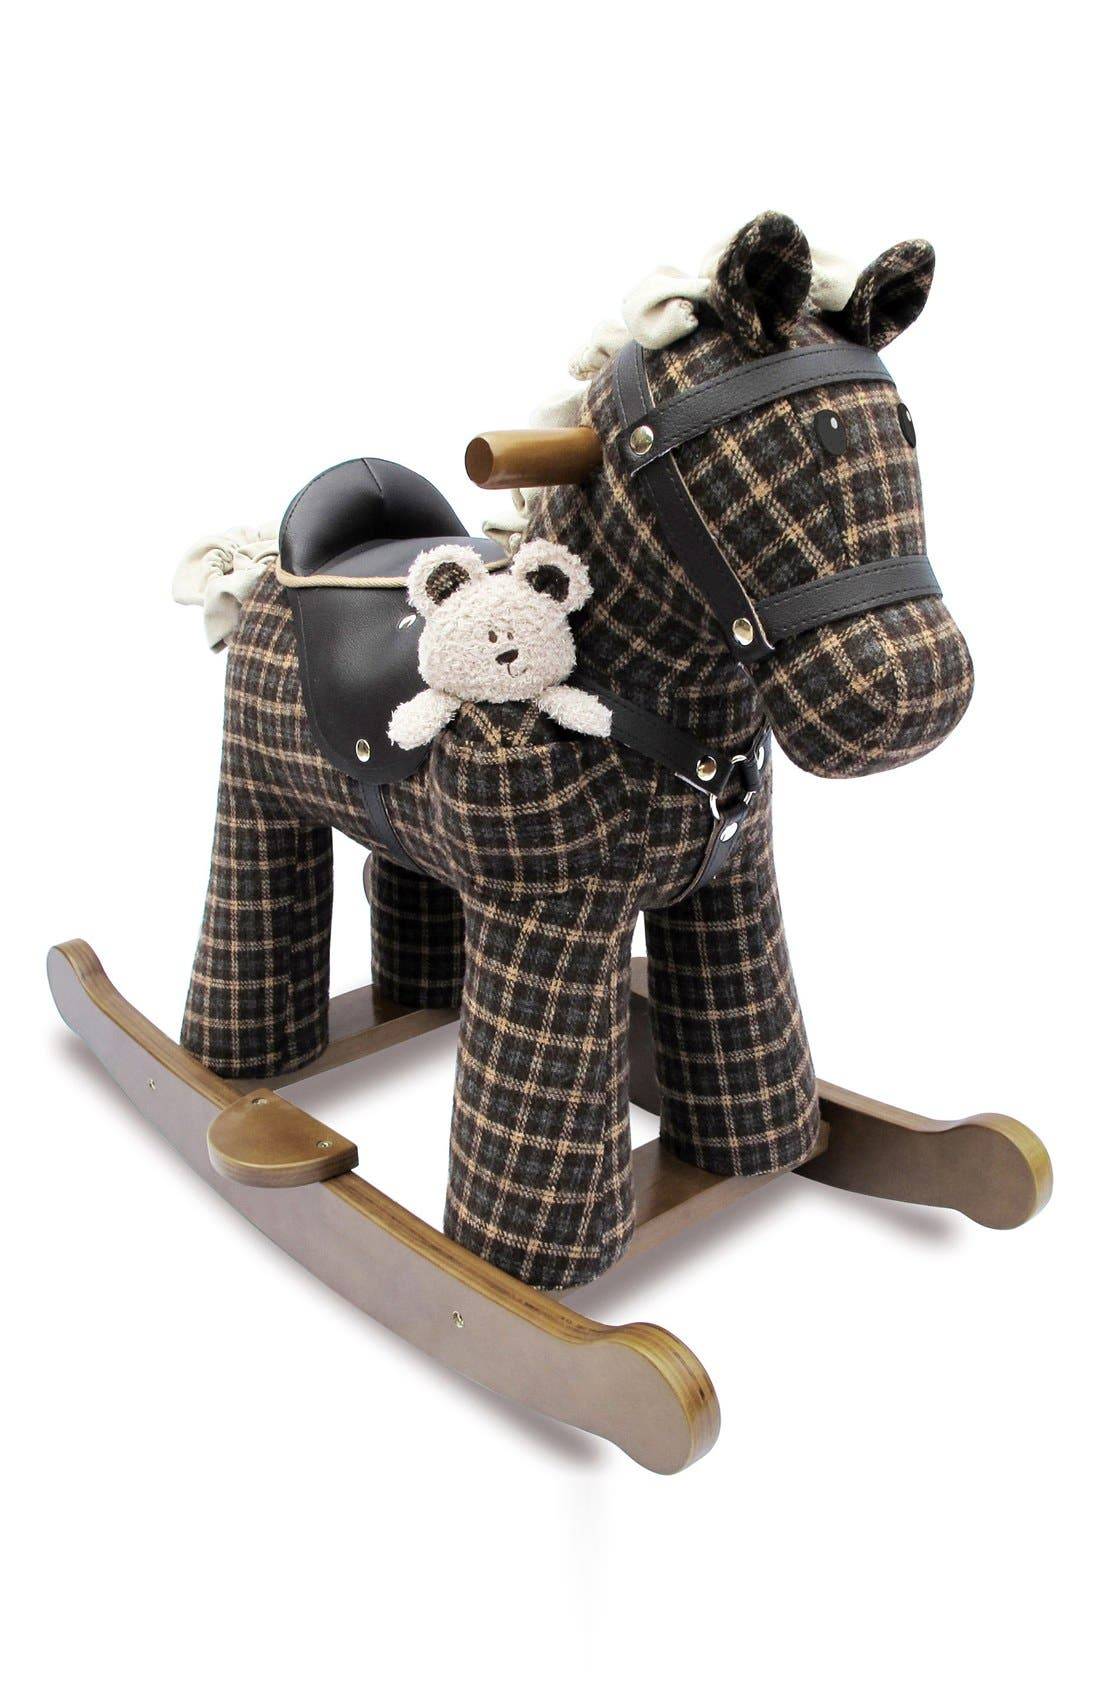 Rufus & Ted Rocking Horse & Stuffed Animal,                         Main,                         color, 200